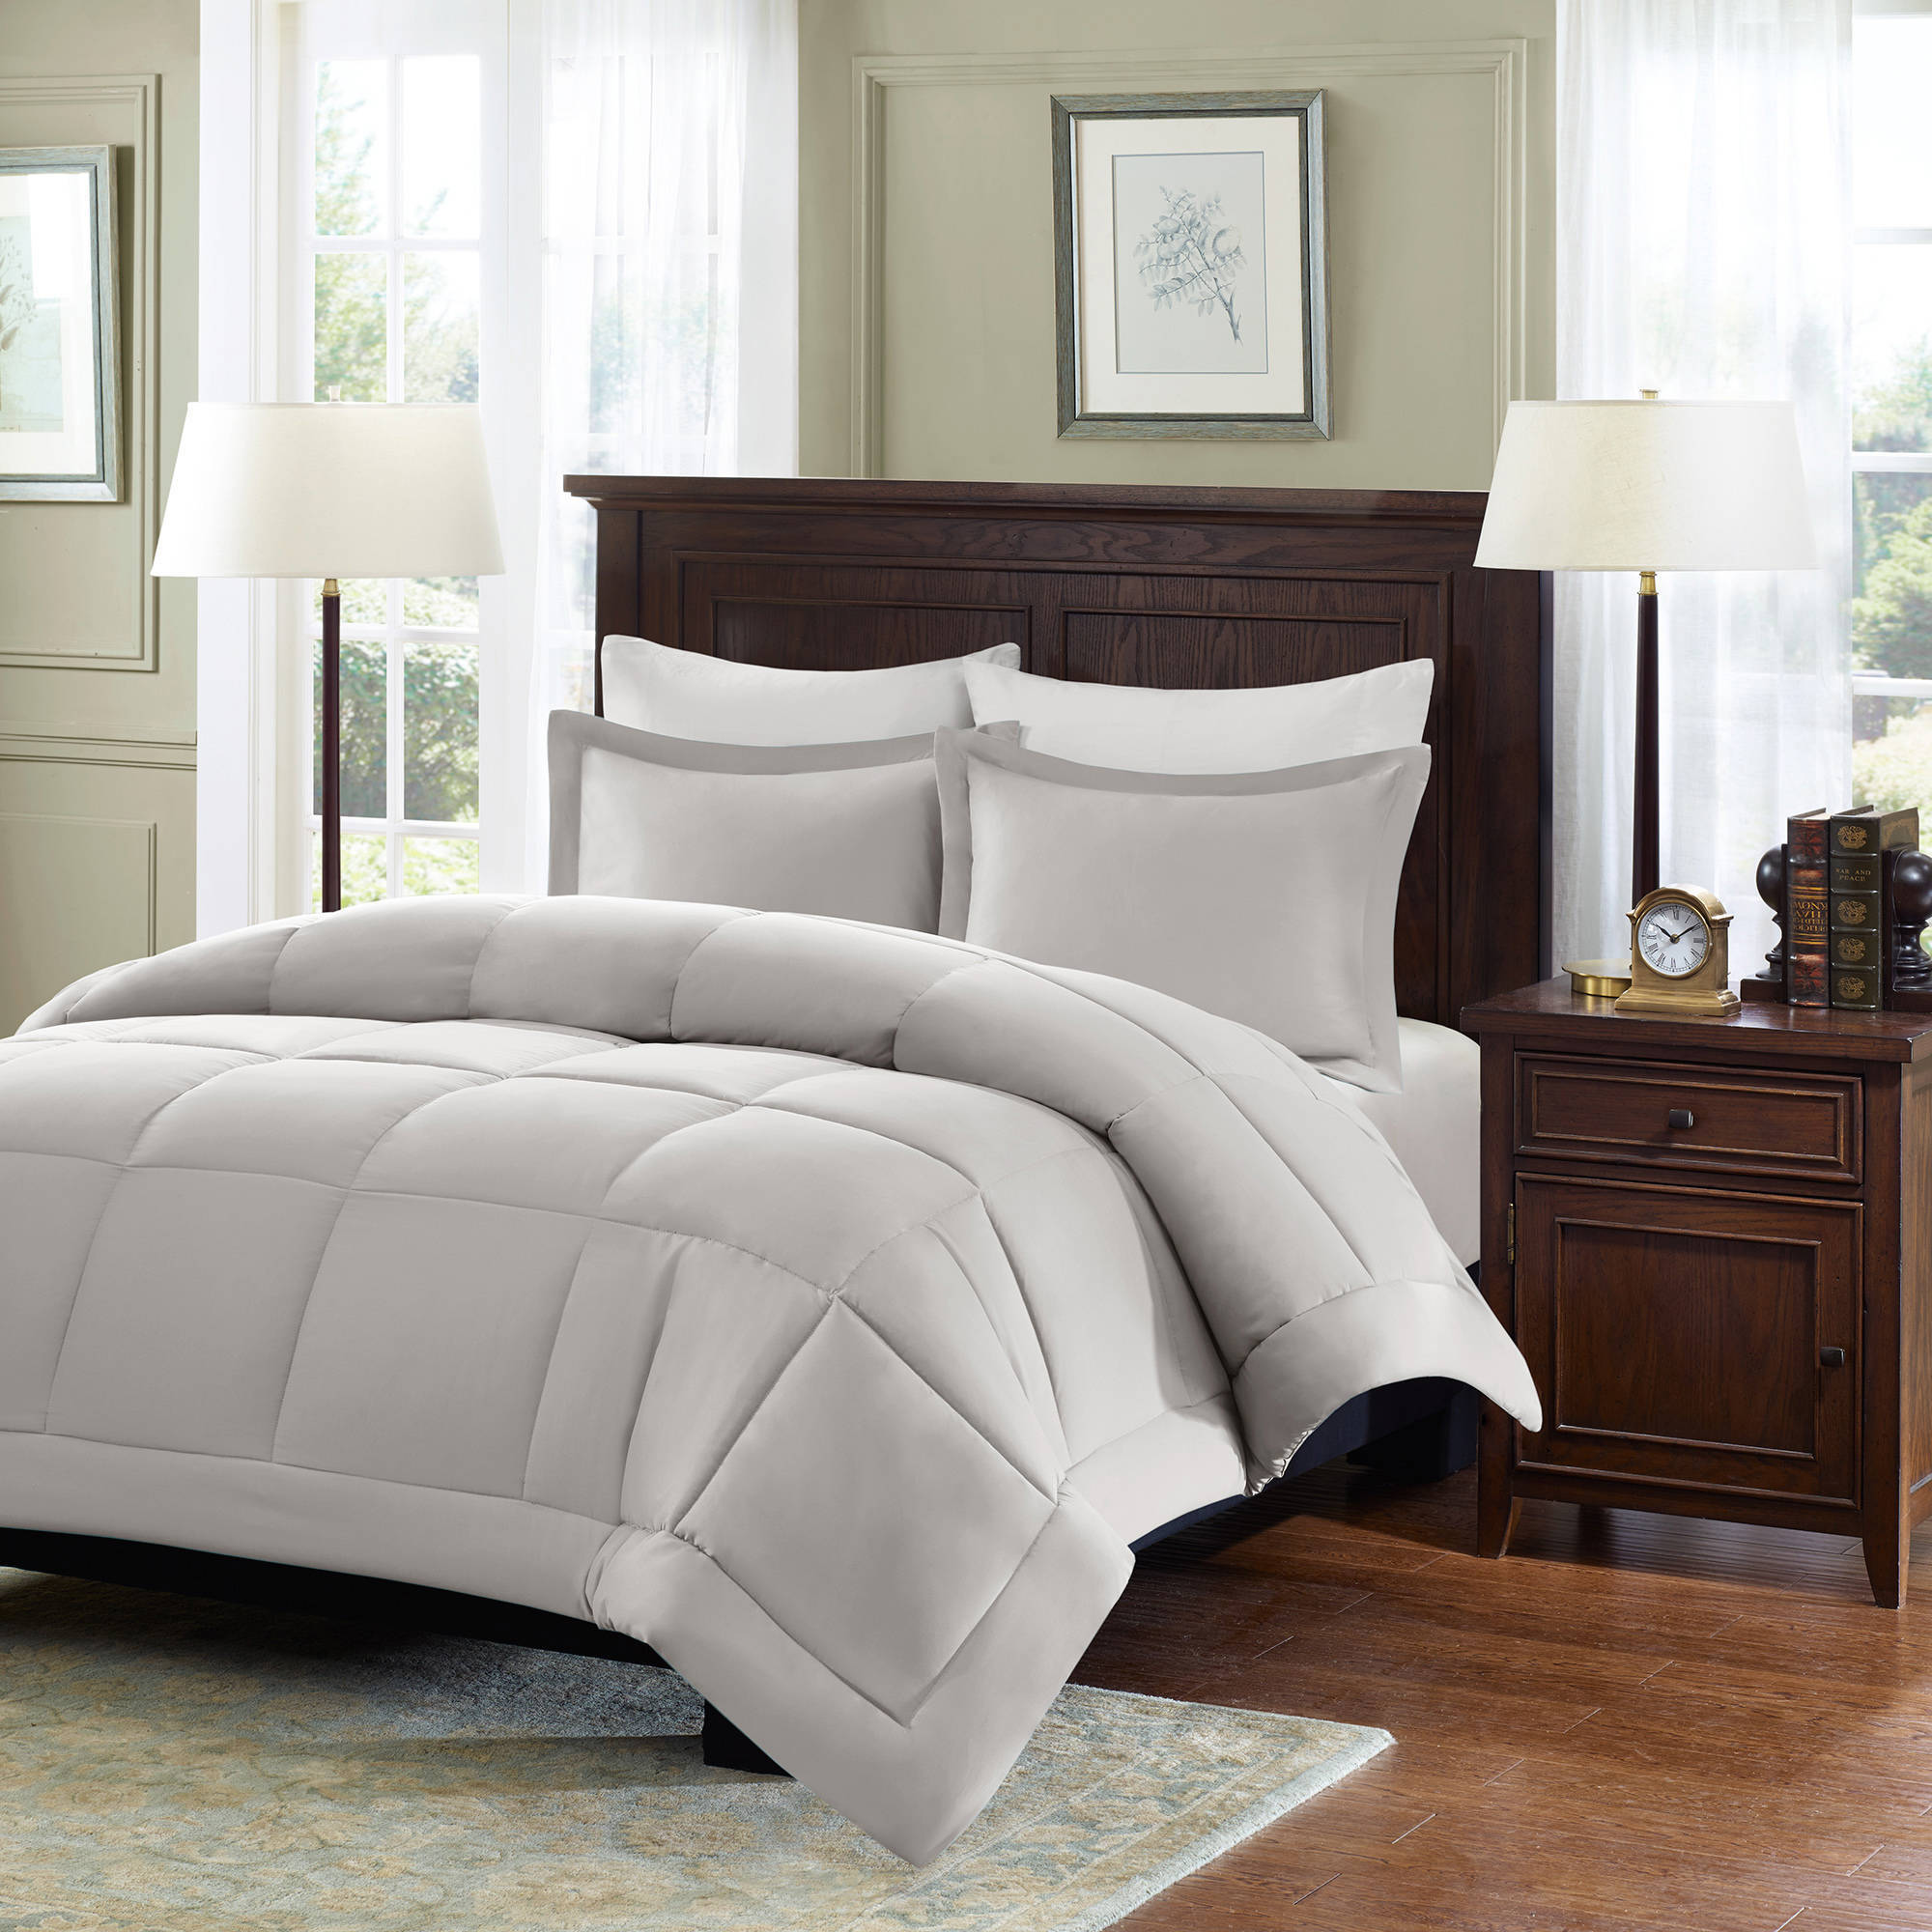 Comfort Classics Belford Microcell Down Alternative Comforter Set